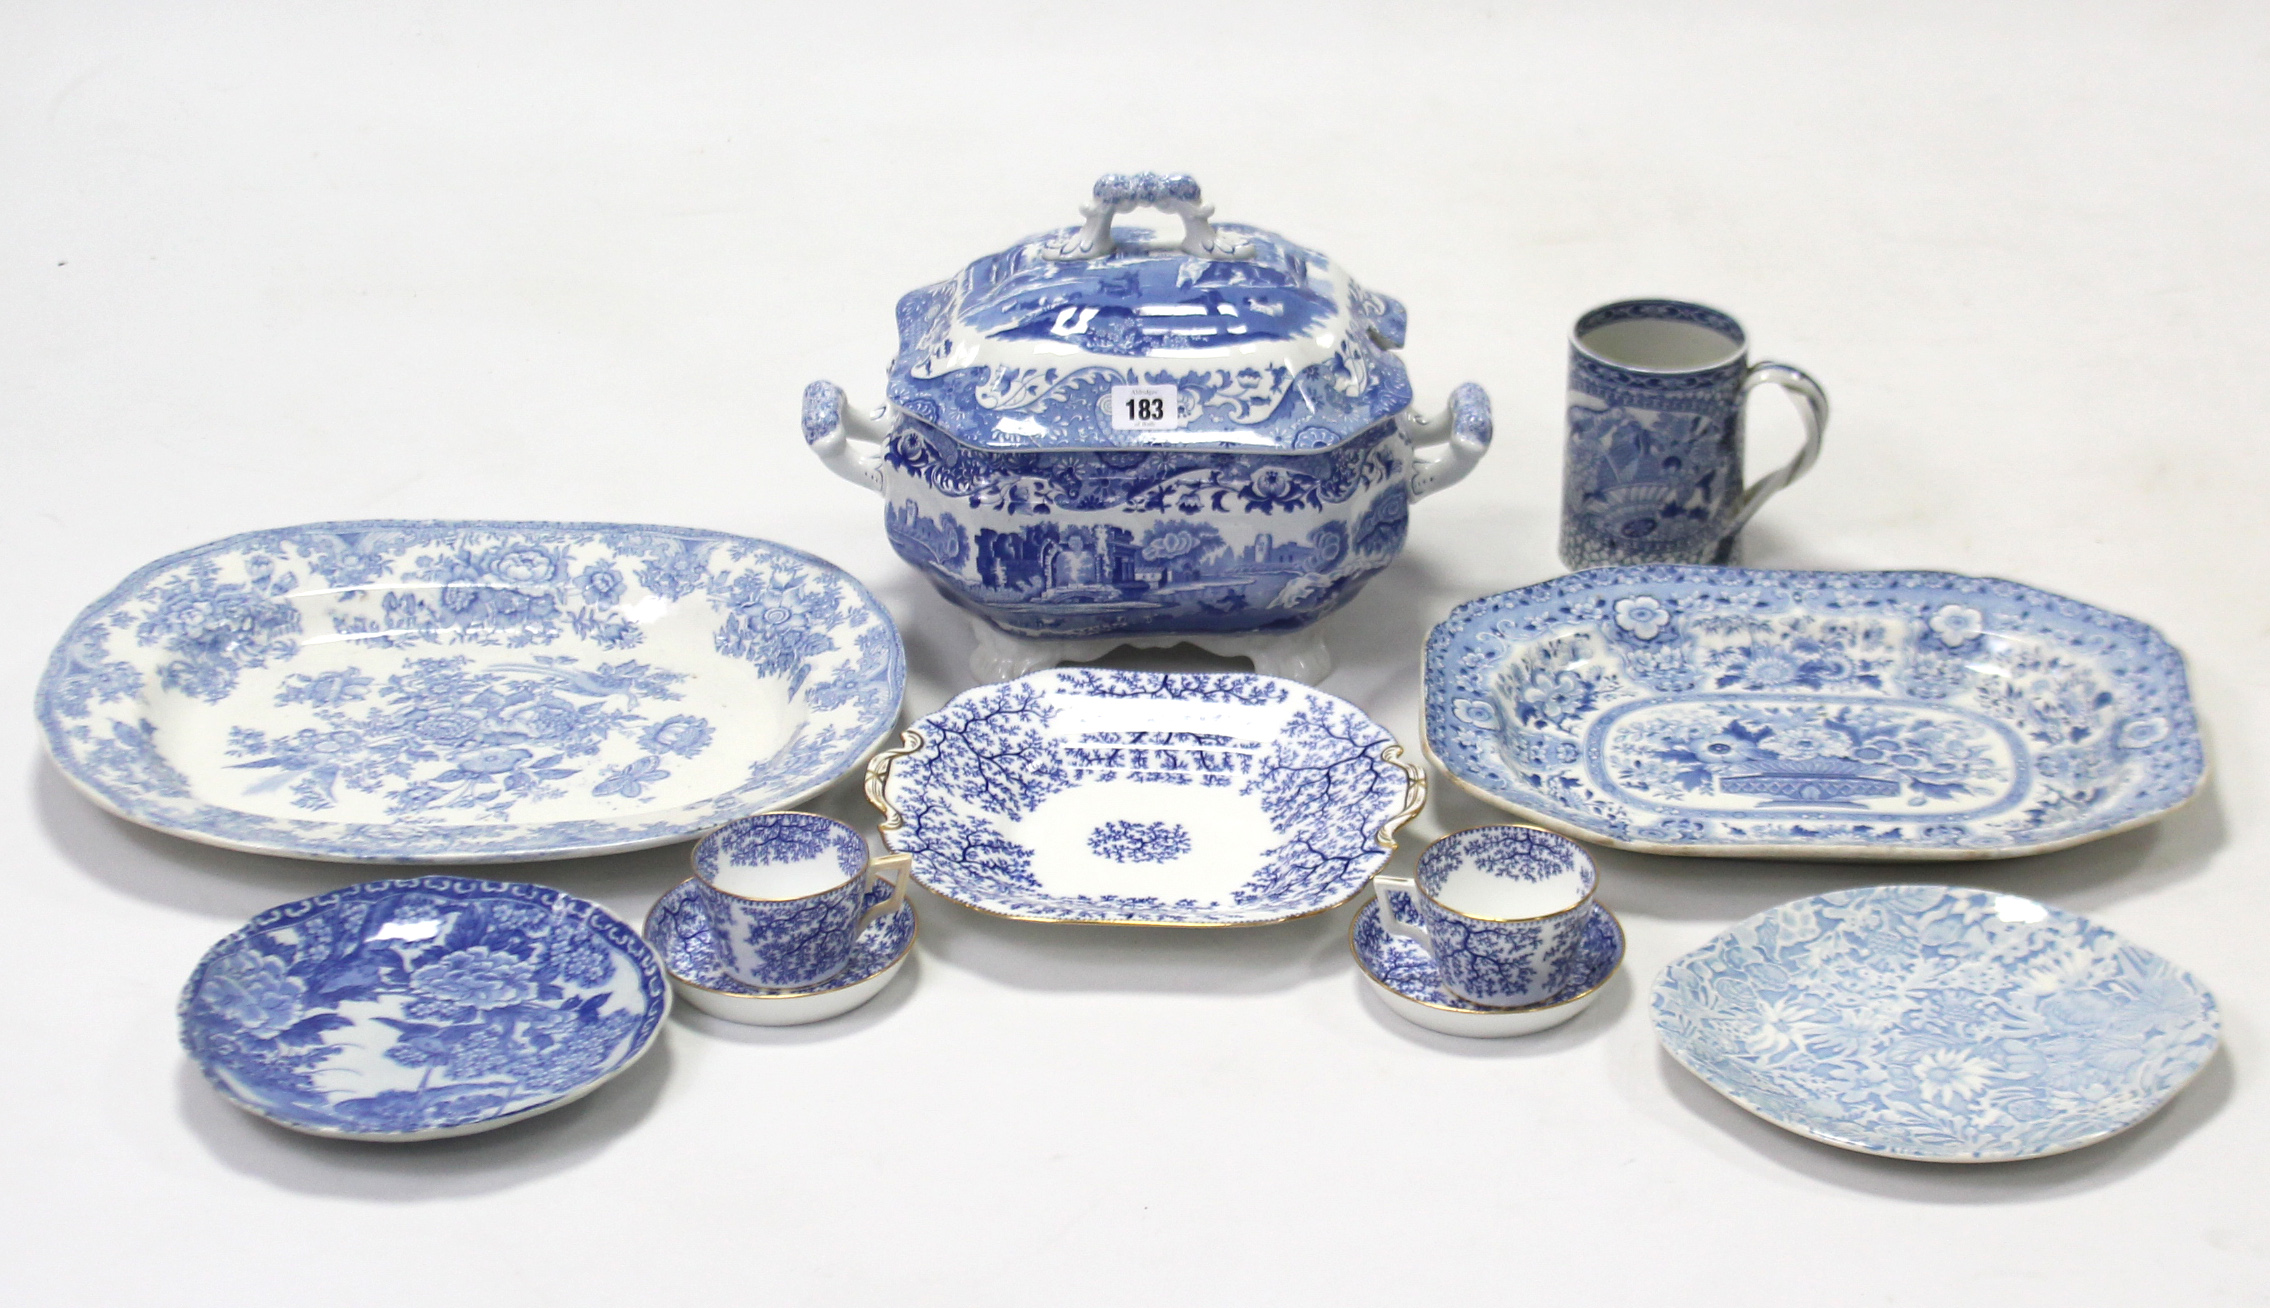 """Lot 183 - A Spode's blue & white """"Italian"""" pattern vegetable tureen, 10"""" wide; two blue & white china meat"""